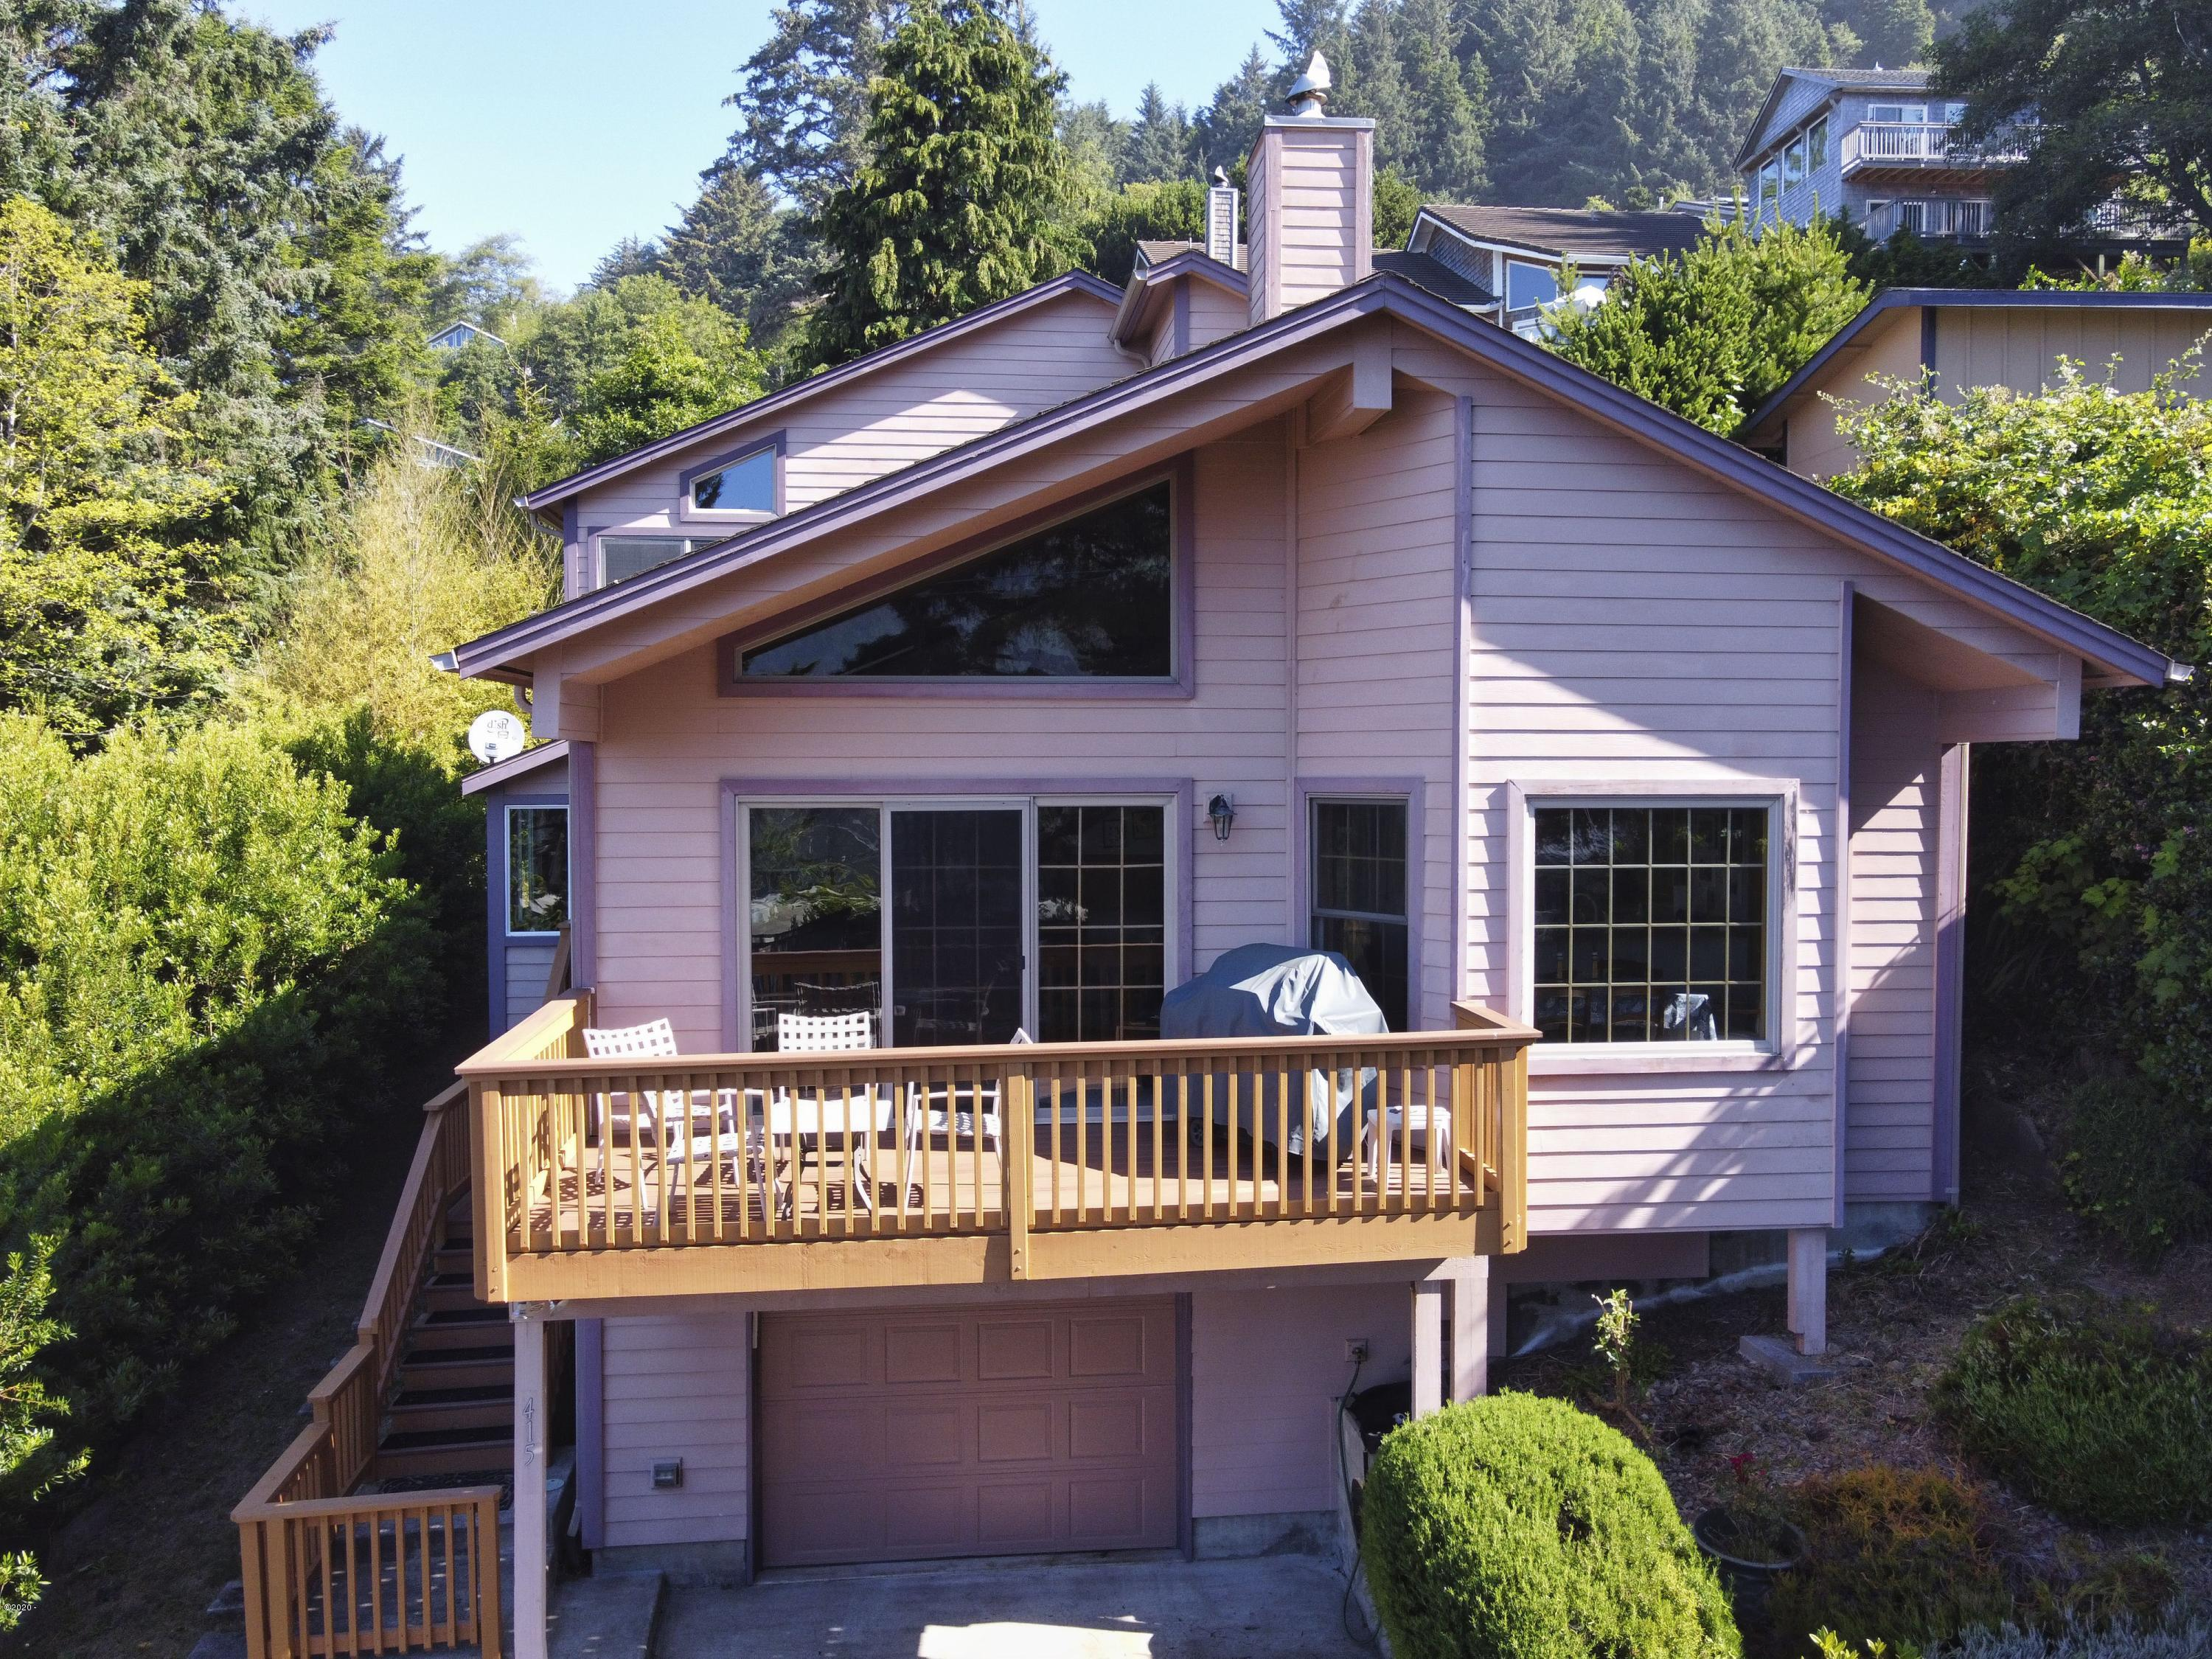 415 E 2nd St, Yachats, OR 97498 - 415 E 2nd St. aerial